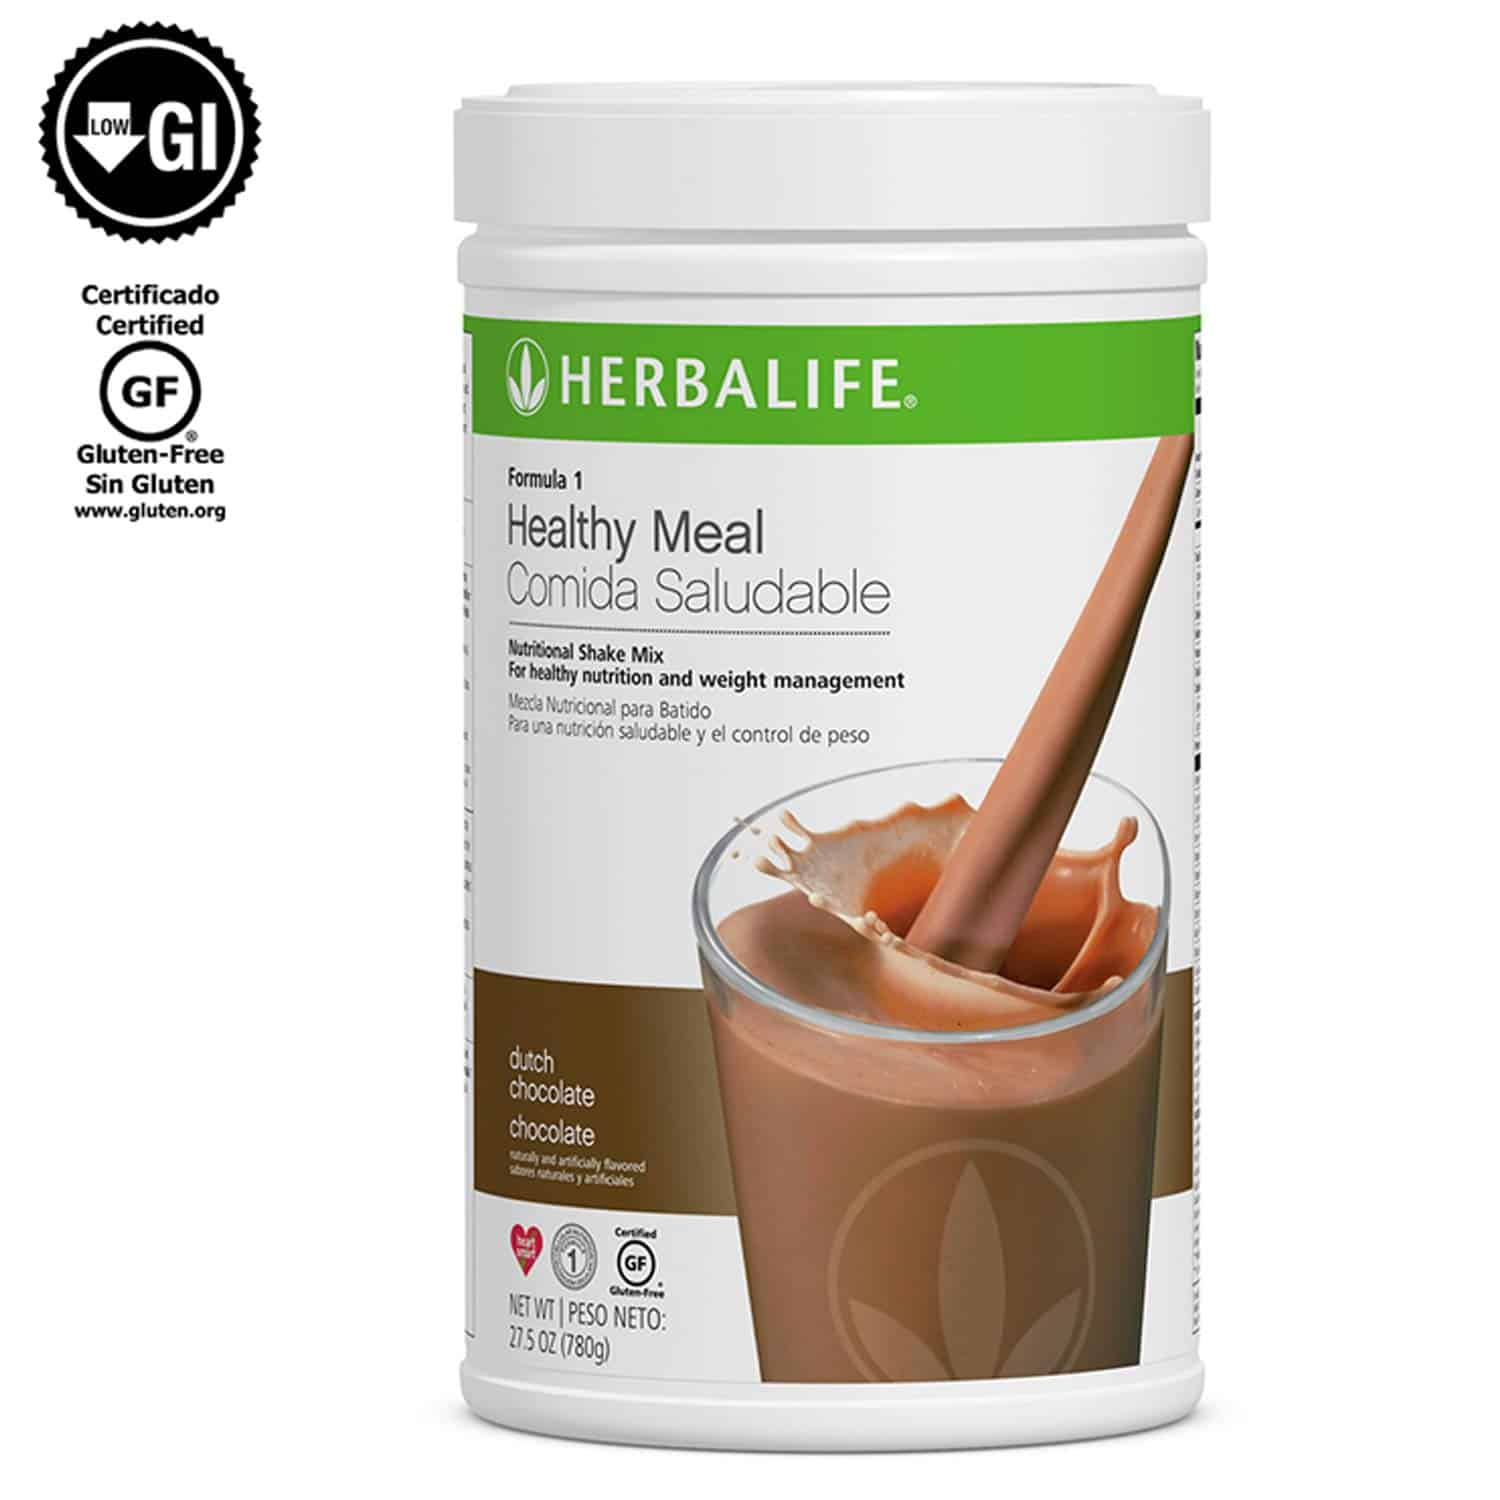 We review some of the Herbal Life diet supplements.